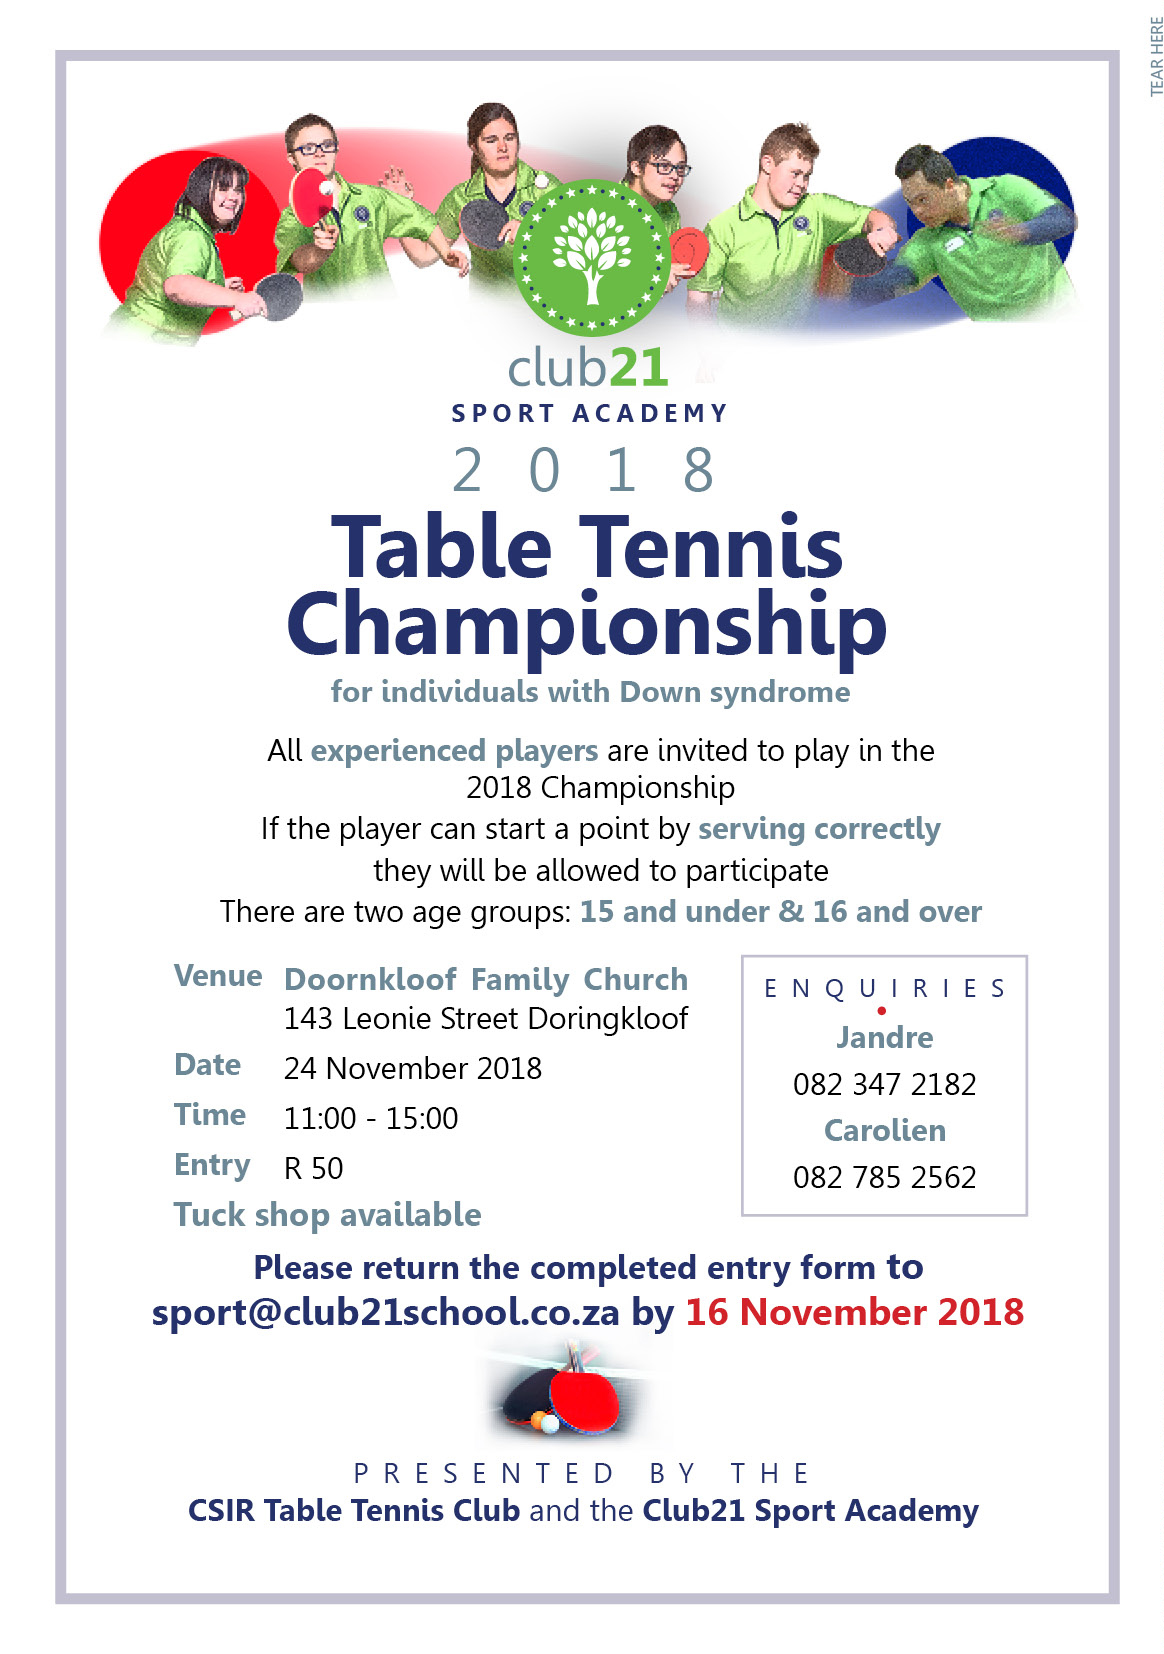 Club21 Learning Center Sport Academy Table Tennis Championship